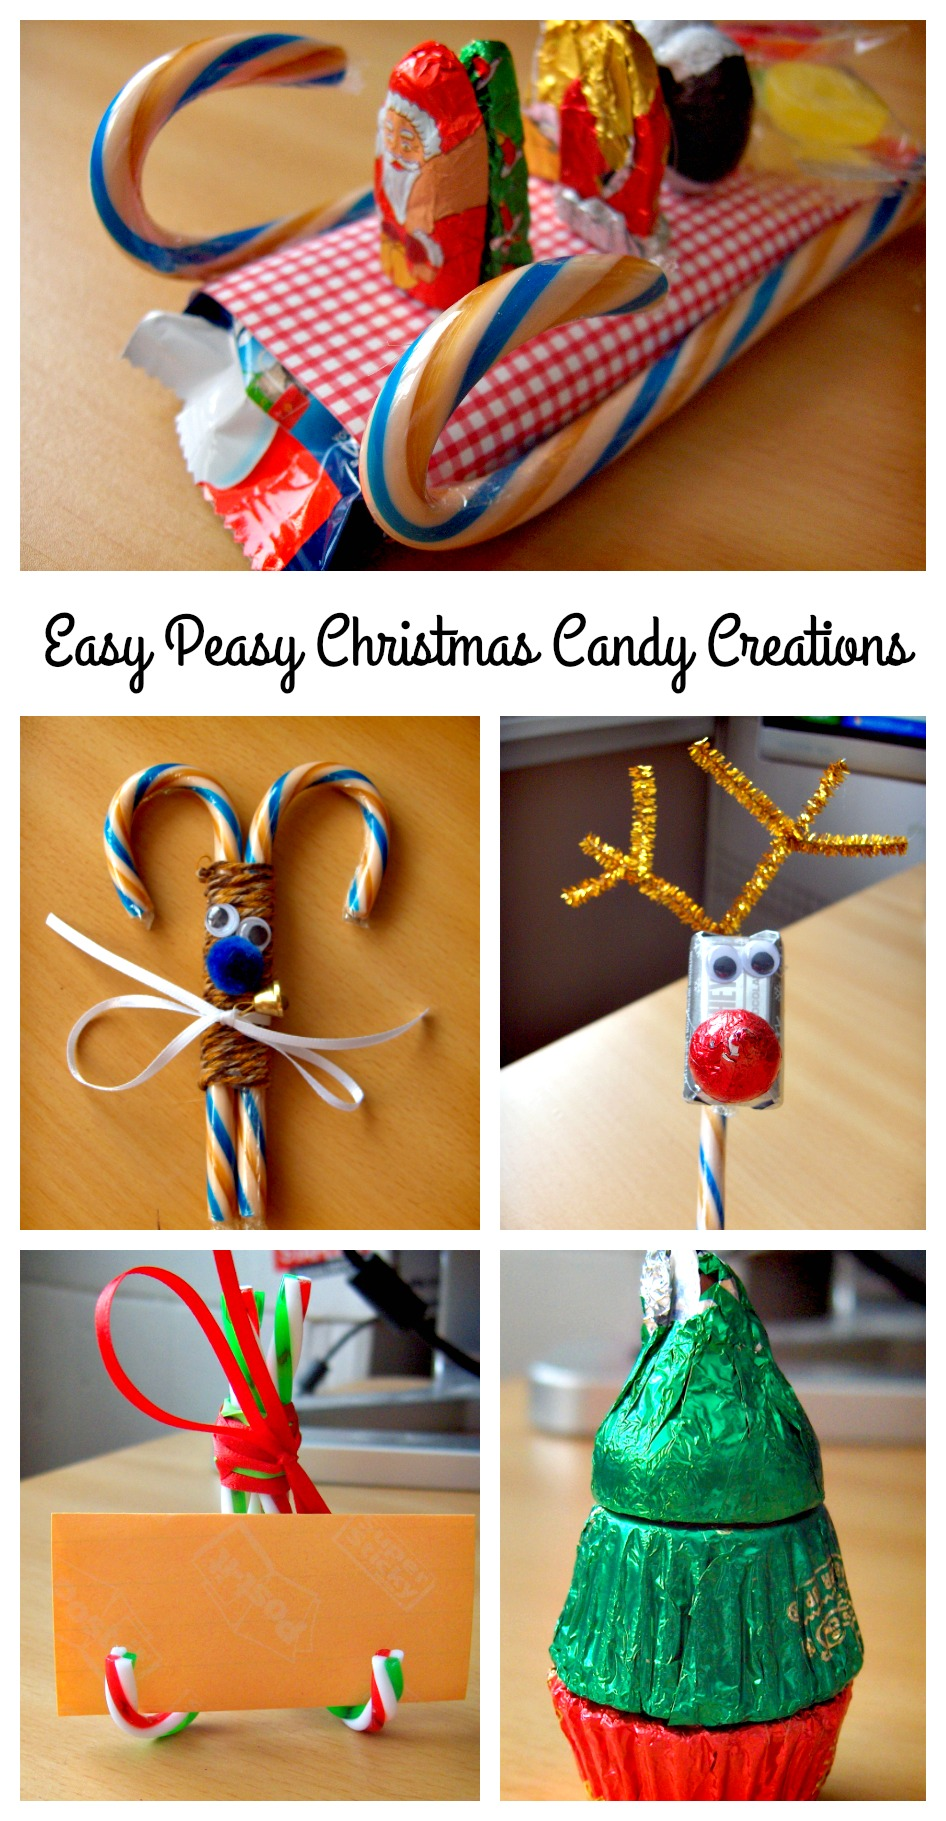 Easy Peasy Christmas Candy Creations You Can Make For The